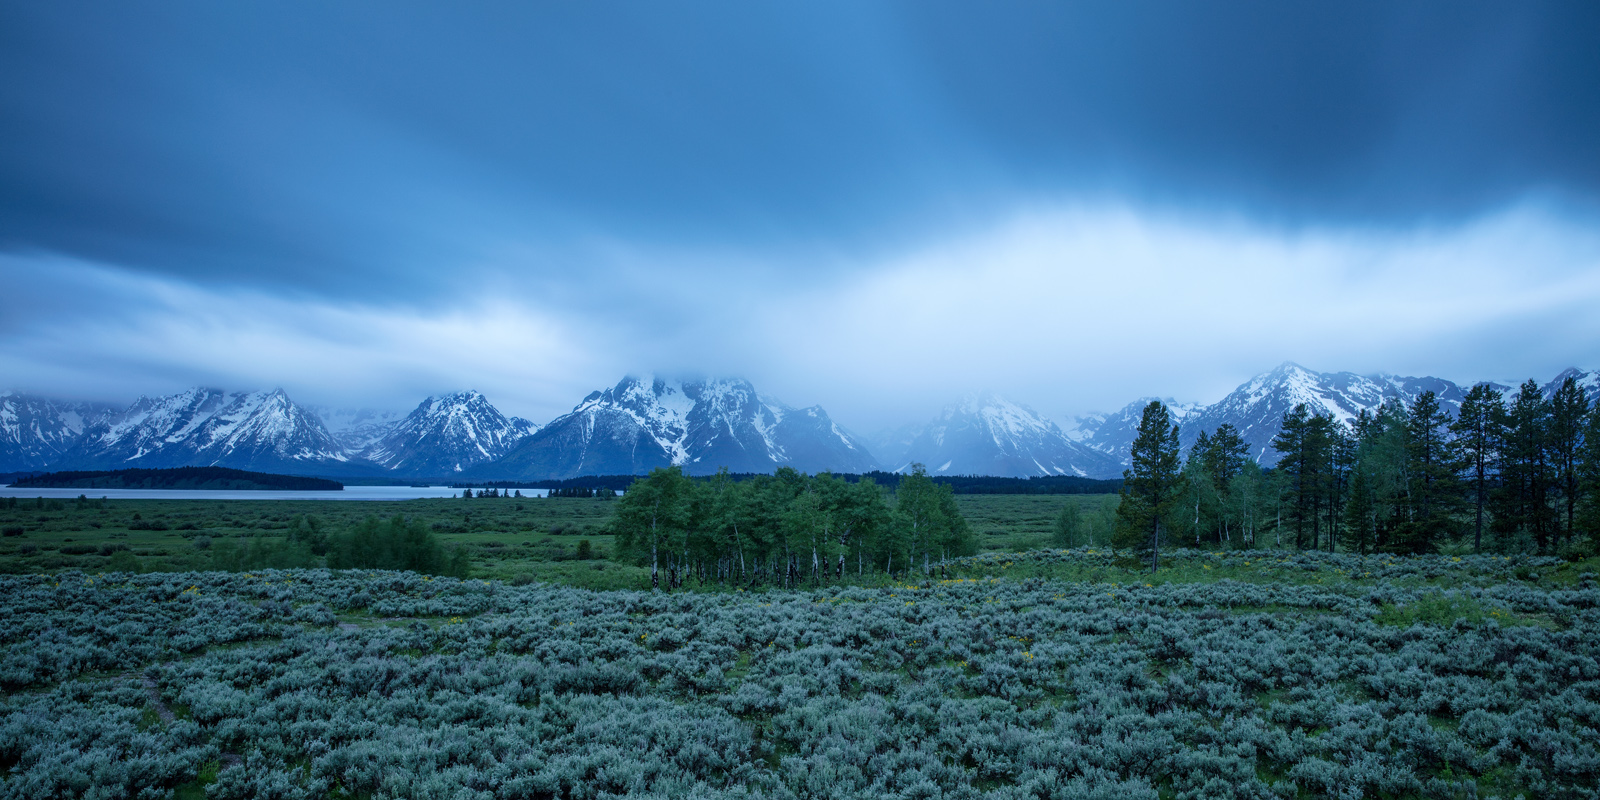 Grand Tetons National Park, Willow Flats, Wyoming, photo